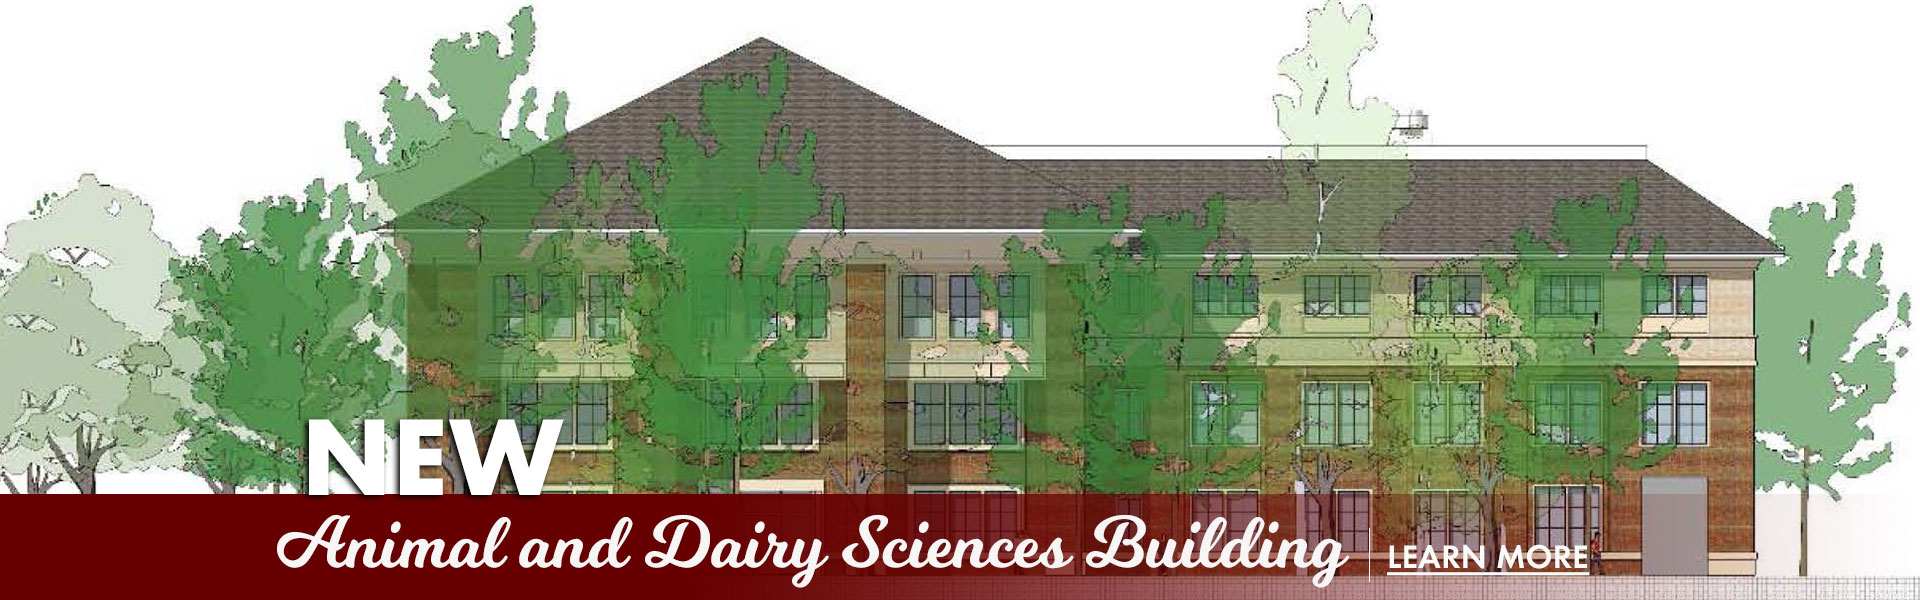 Animal and Dairy Sciences New Building